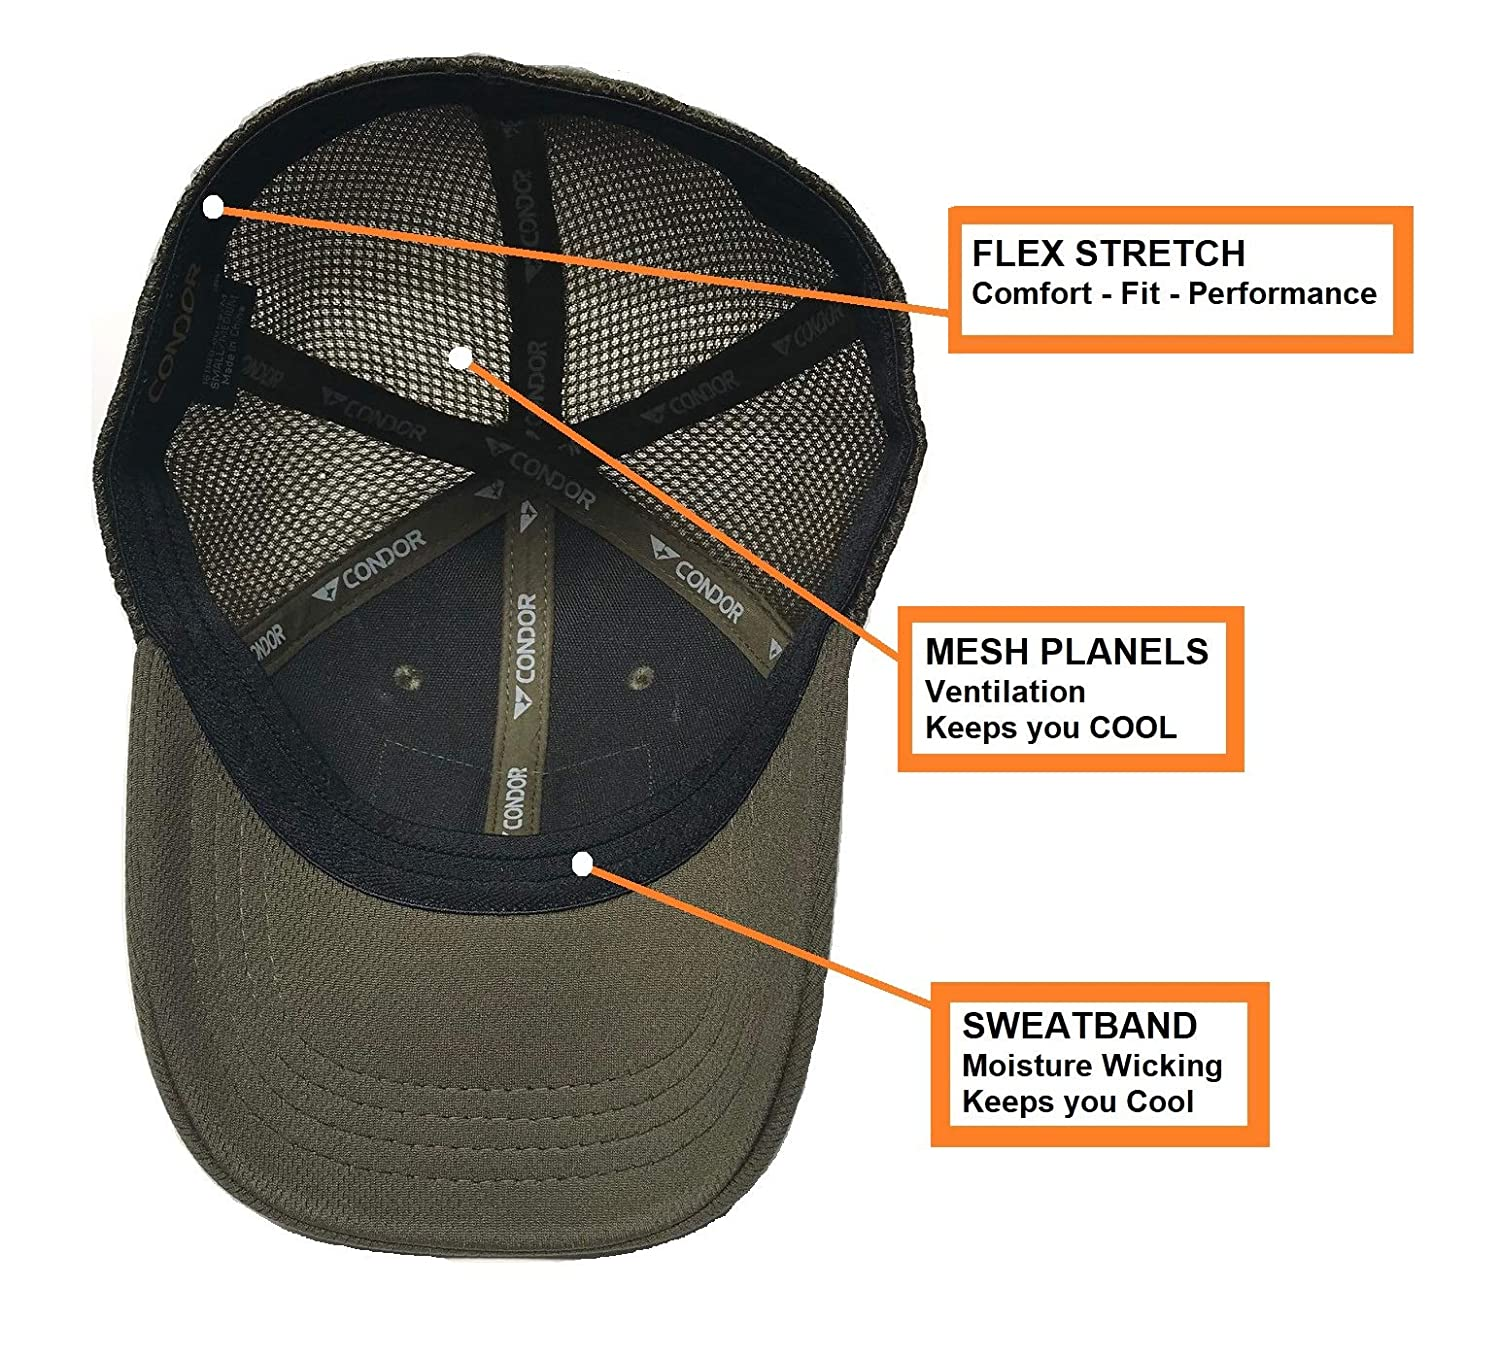 Highly Breathable Fitted Tactical Operator Hat + PVC Flag /& Warrior Patch OD Green Active Duty Gear Condor Flex Mesh Cap